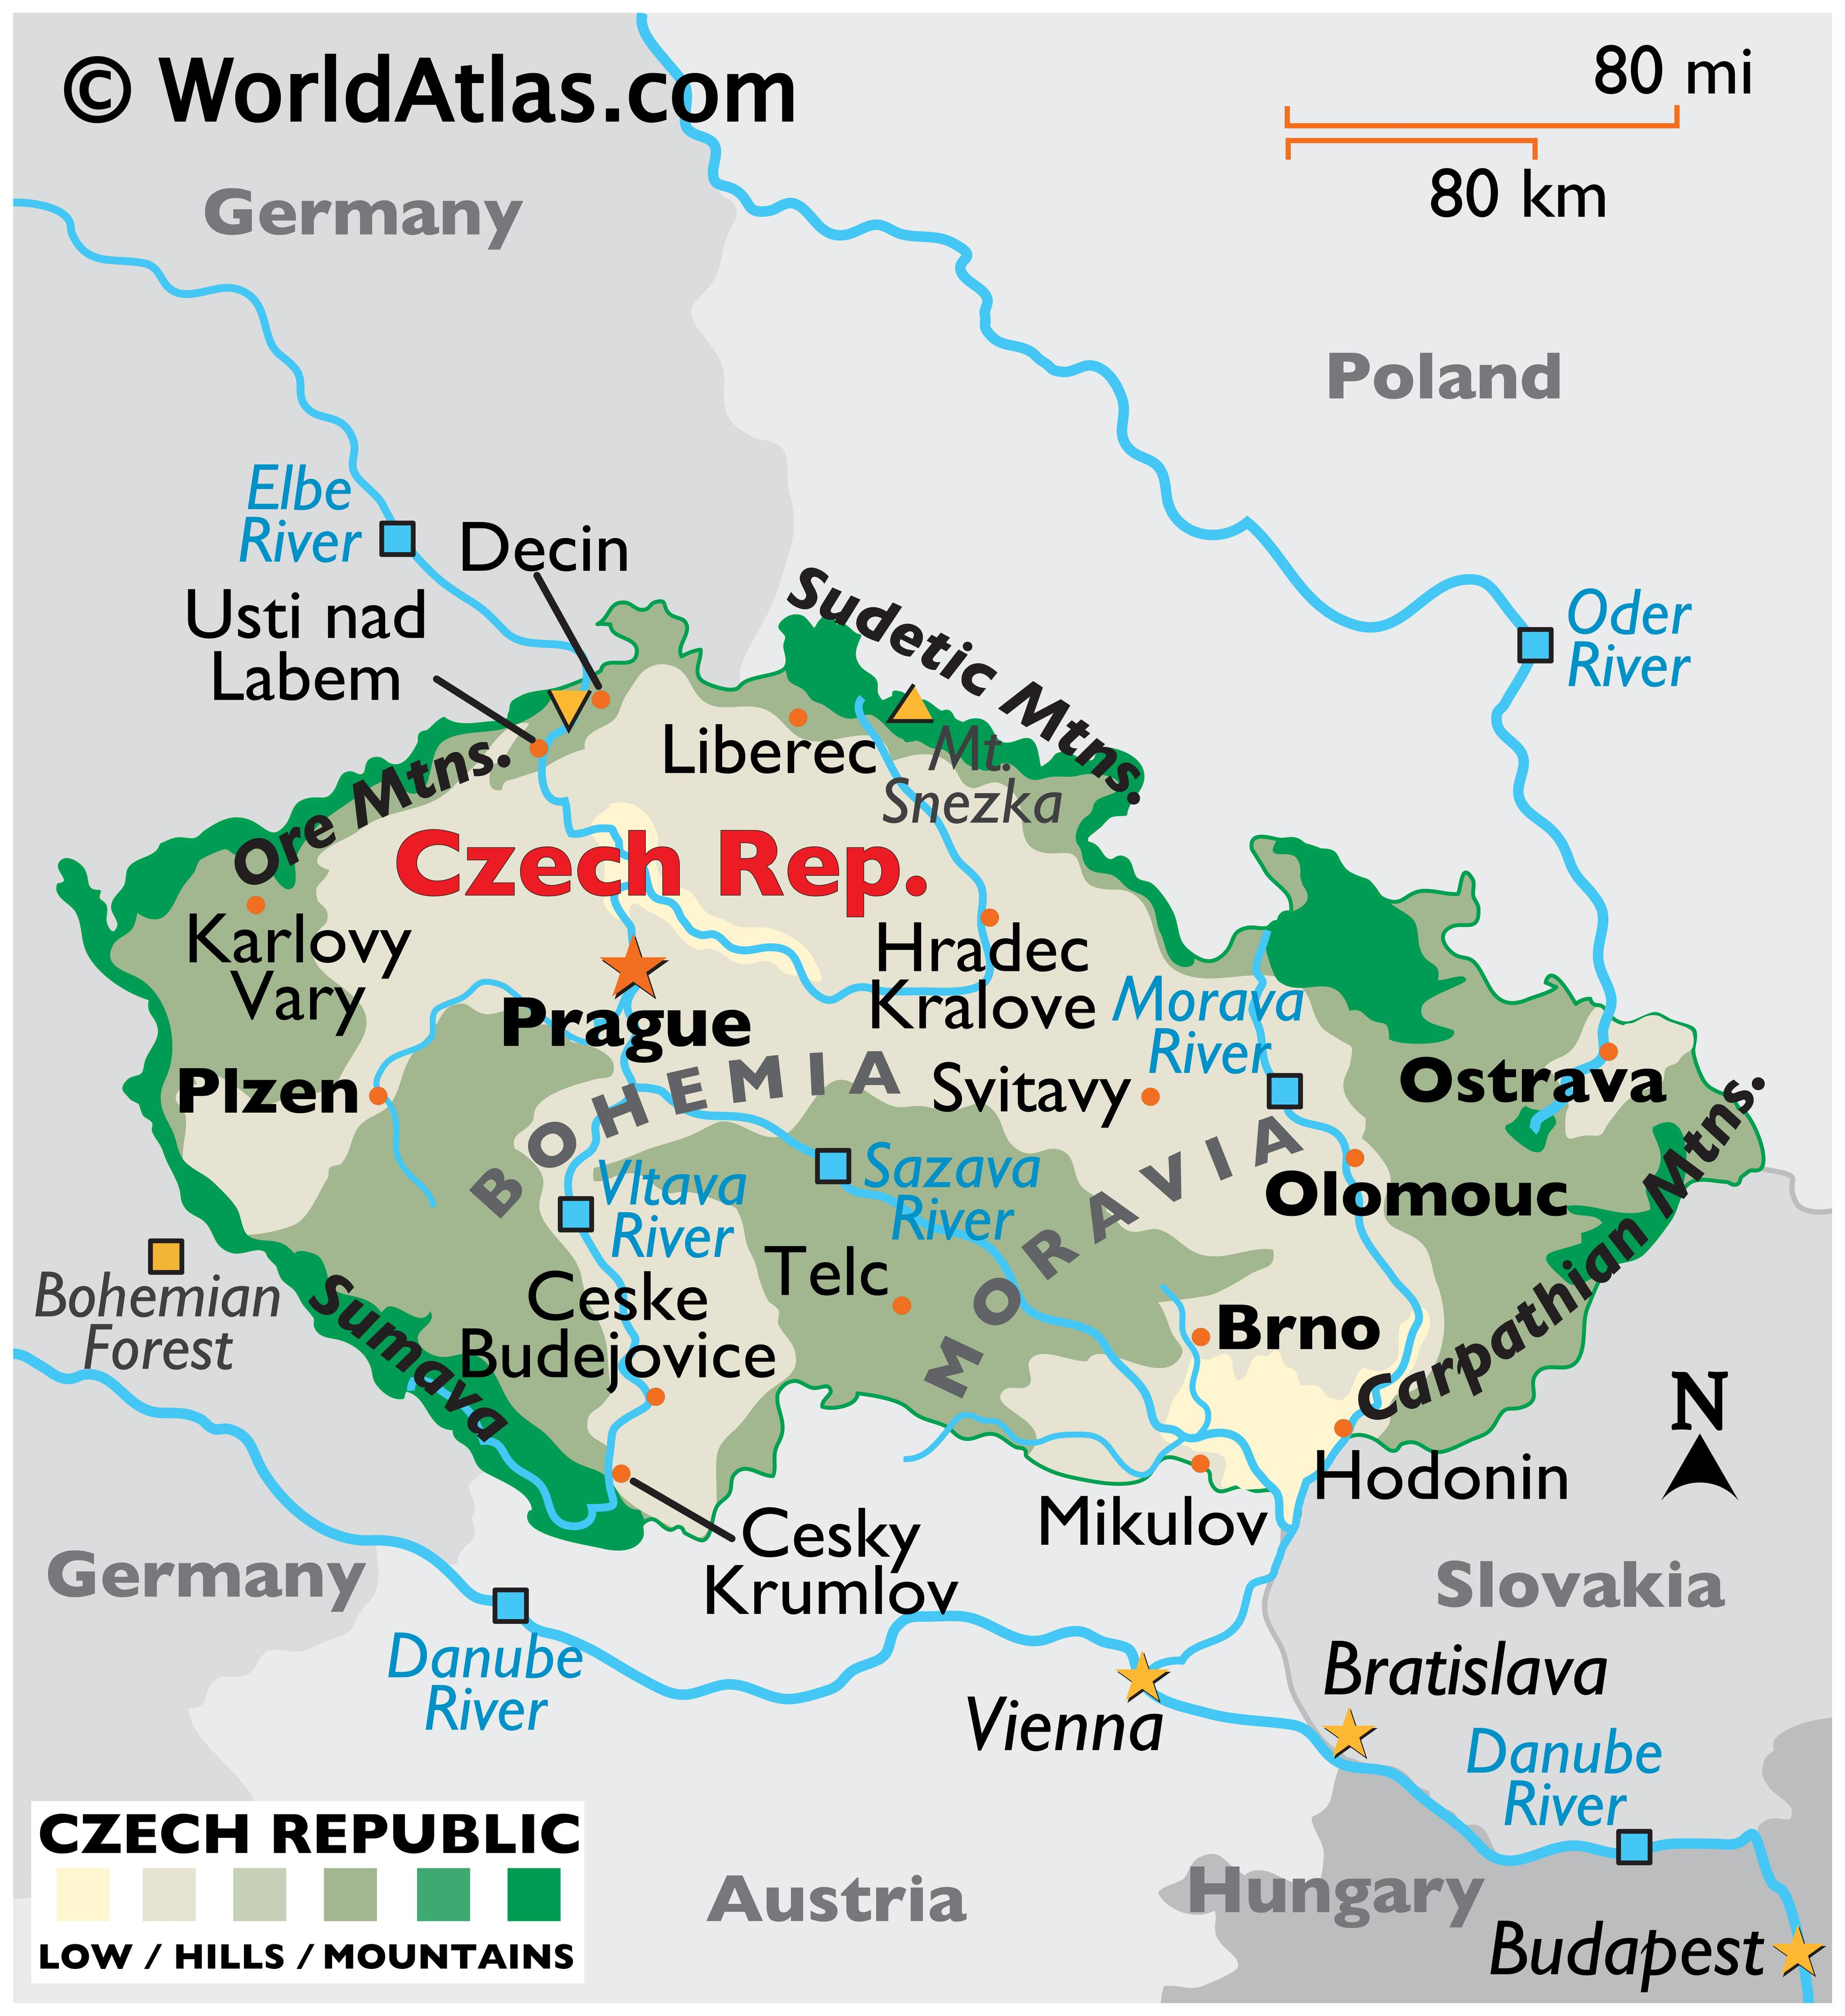 Physical Map of the Czech Republic showing terrain, major rivers, extreme points, important cities, international boundaries, etc.